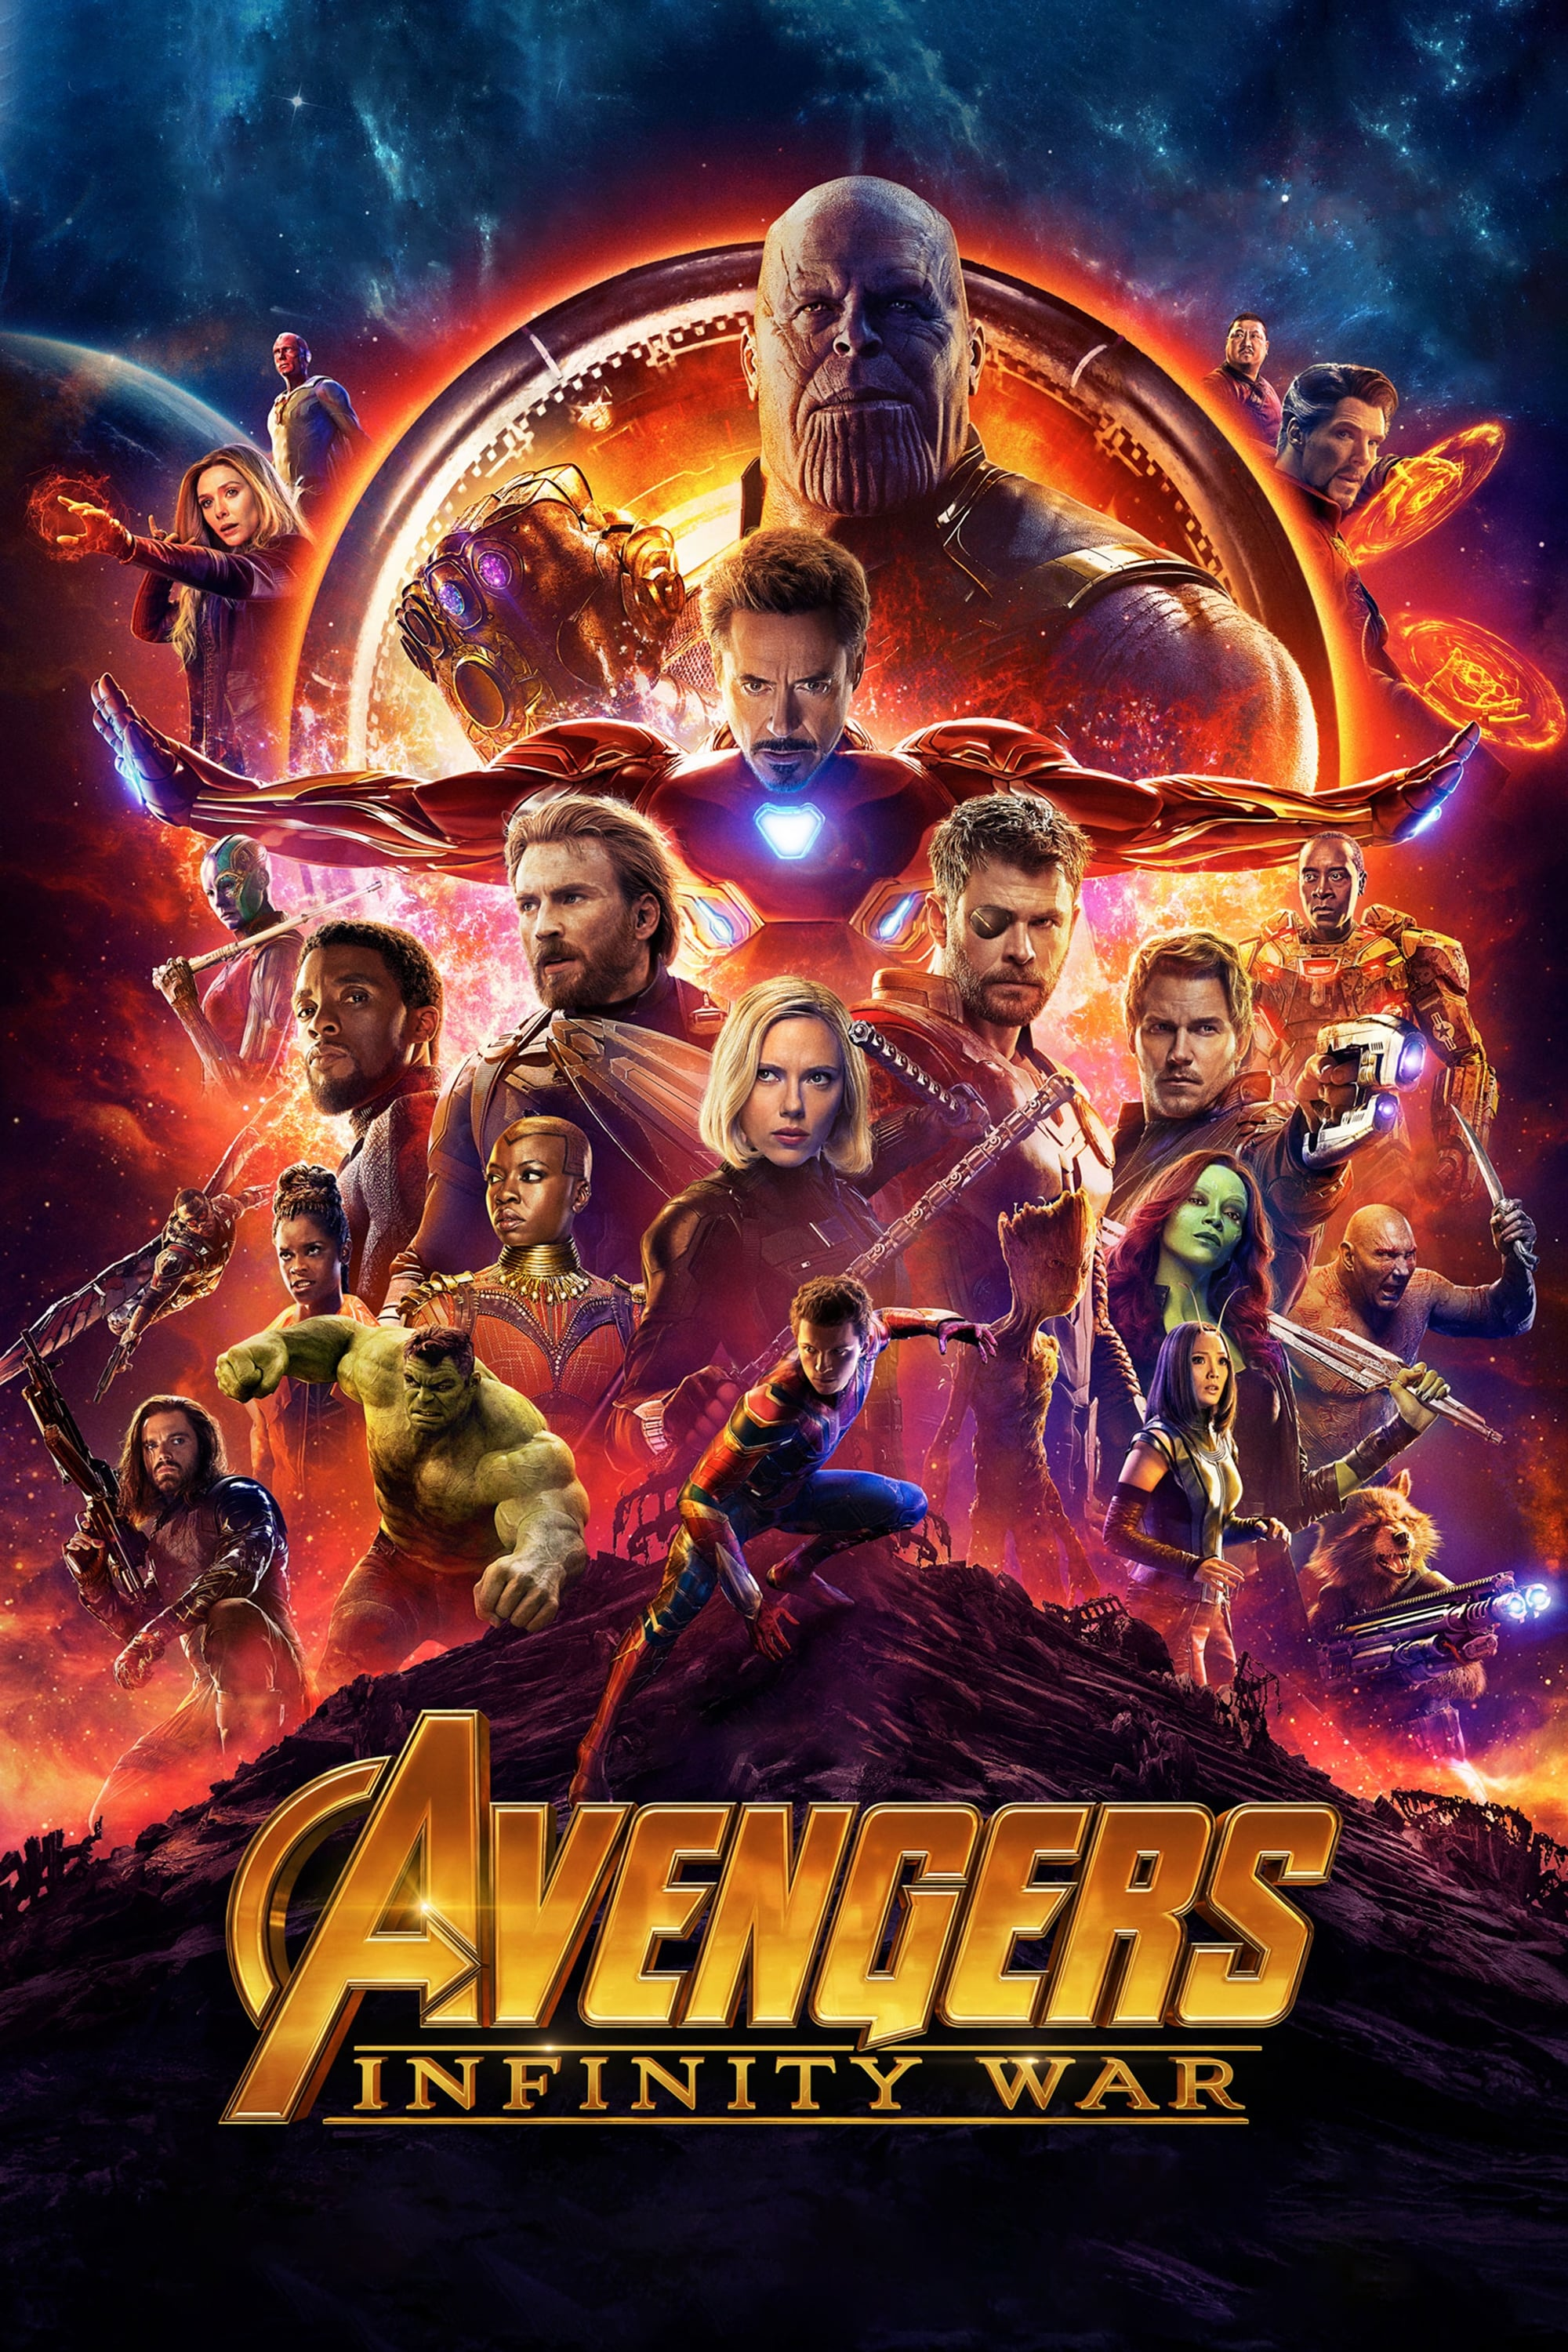 image for Avengers: Infinity War